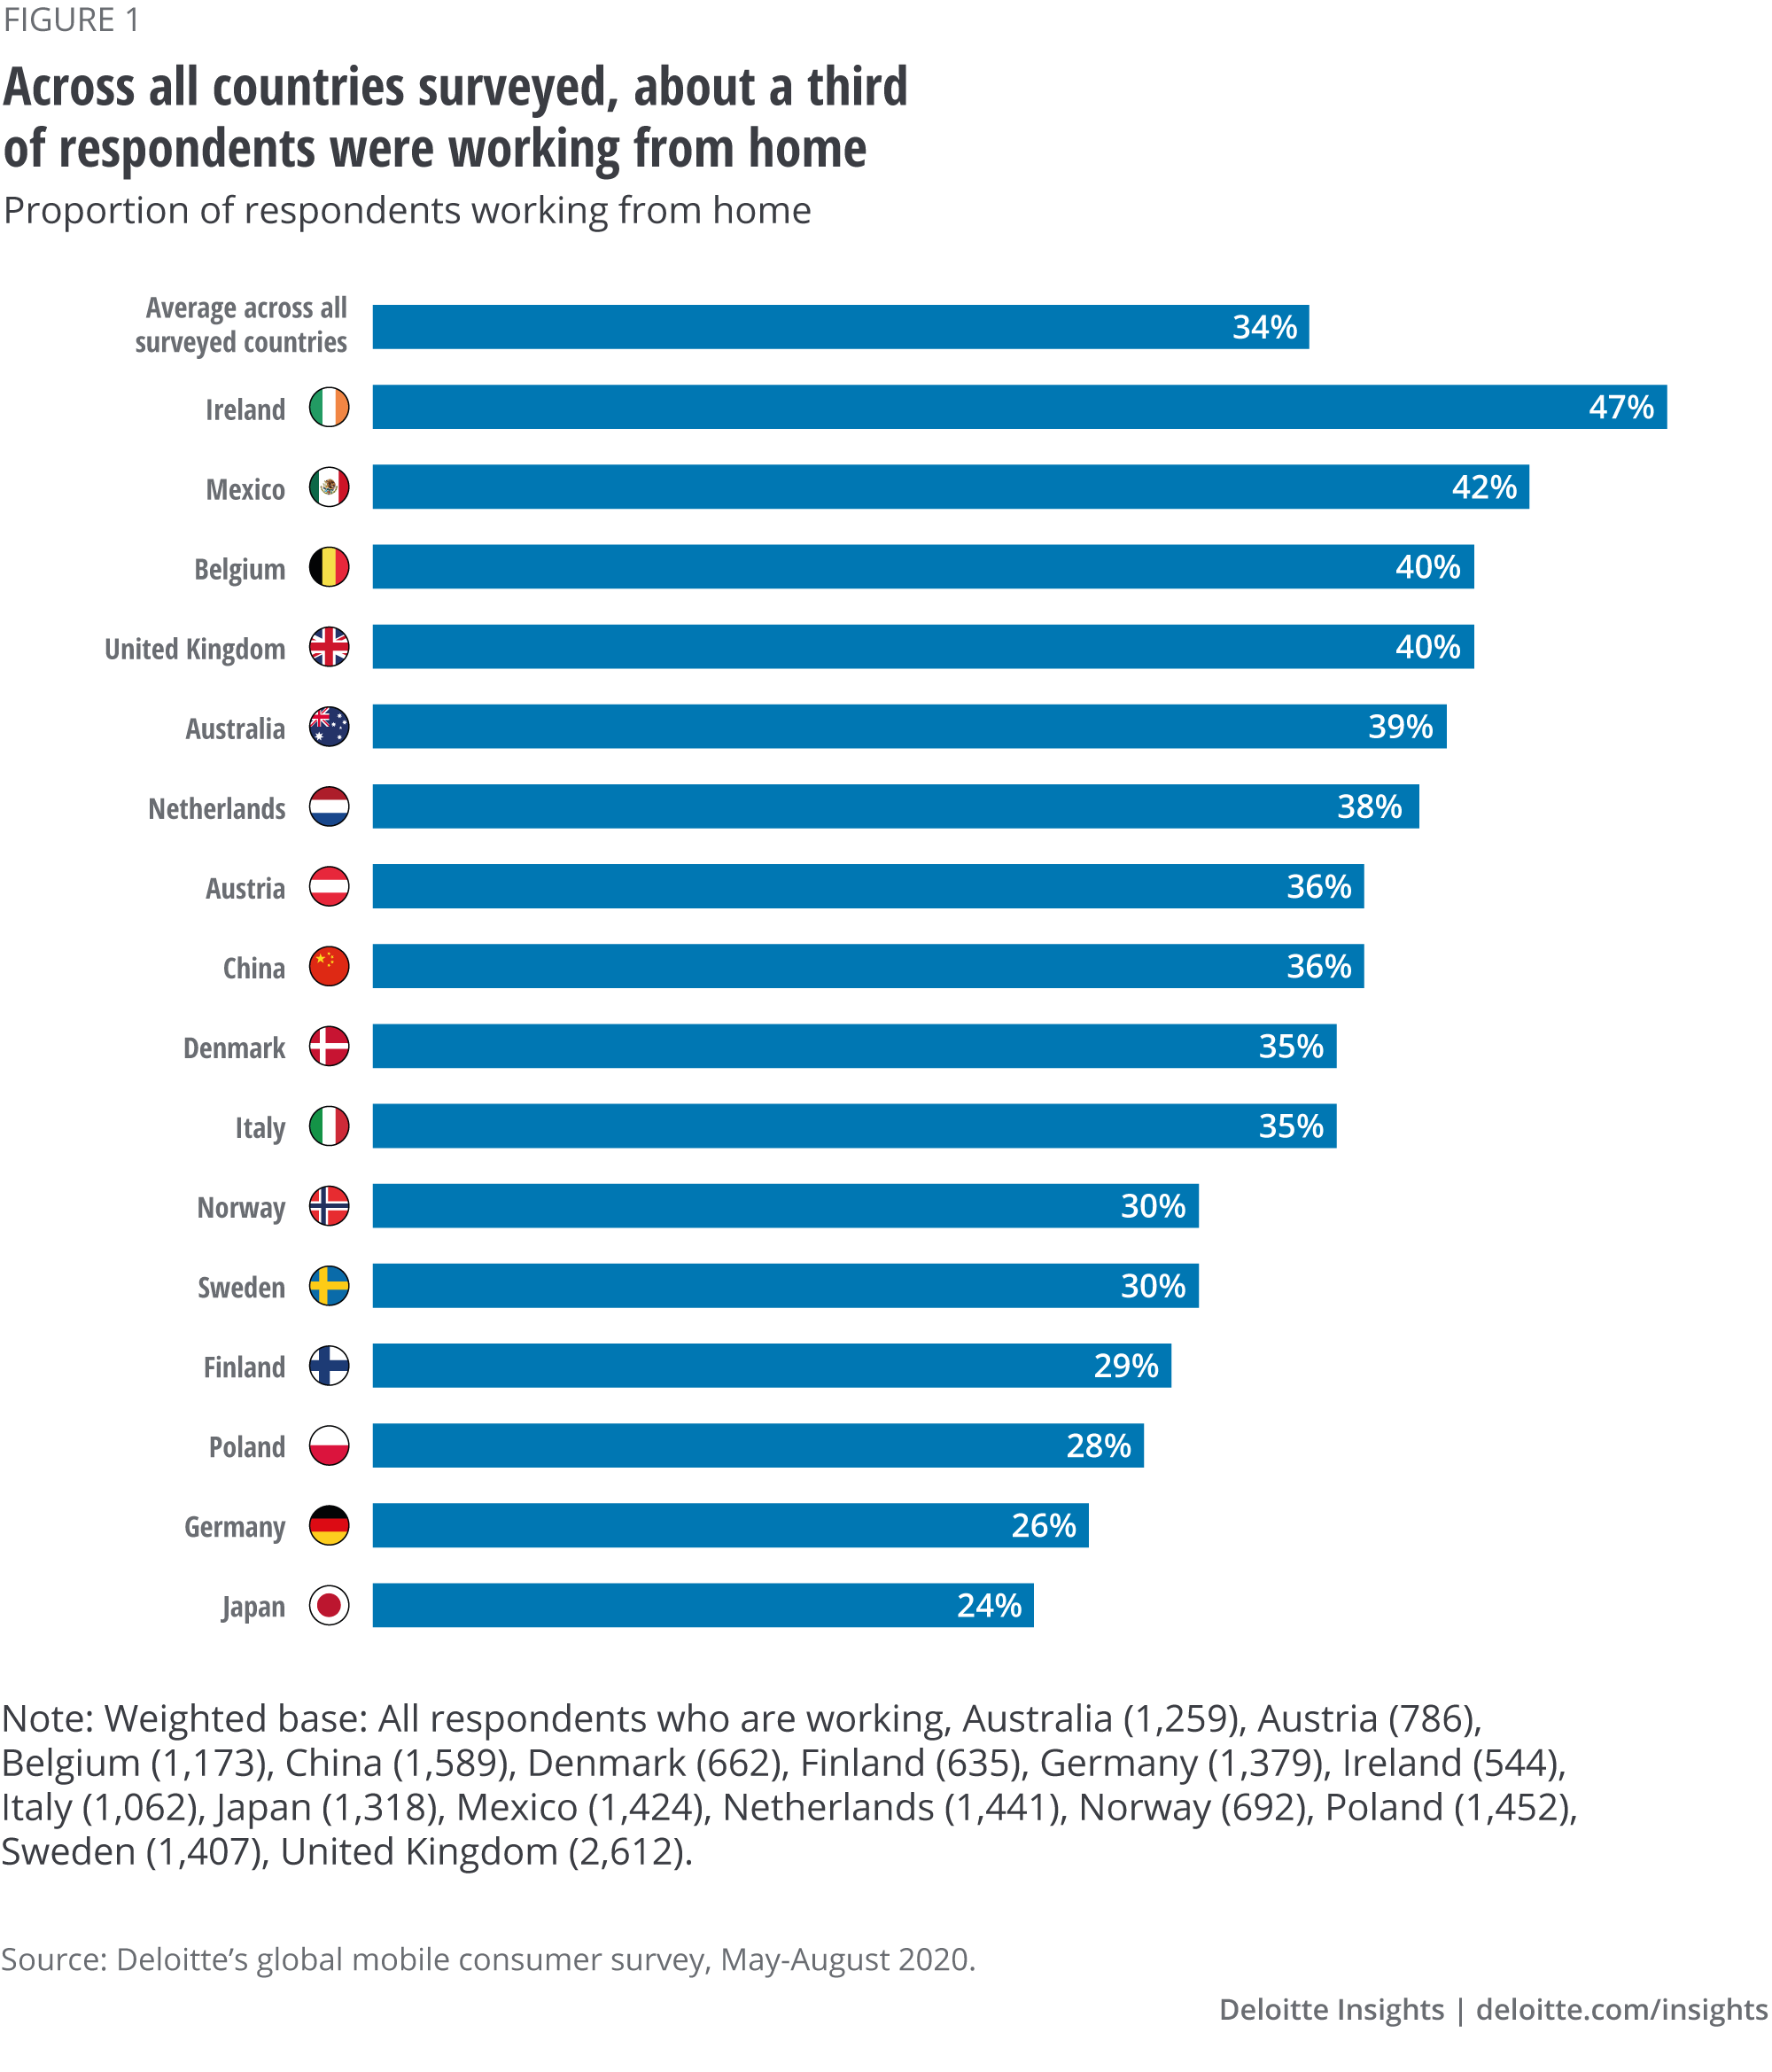 Across all countries surveyed, about a third of respondents were working from home